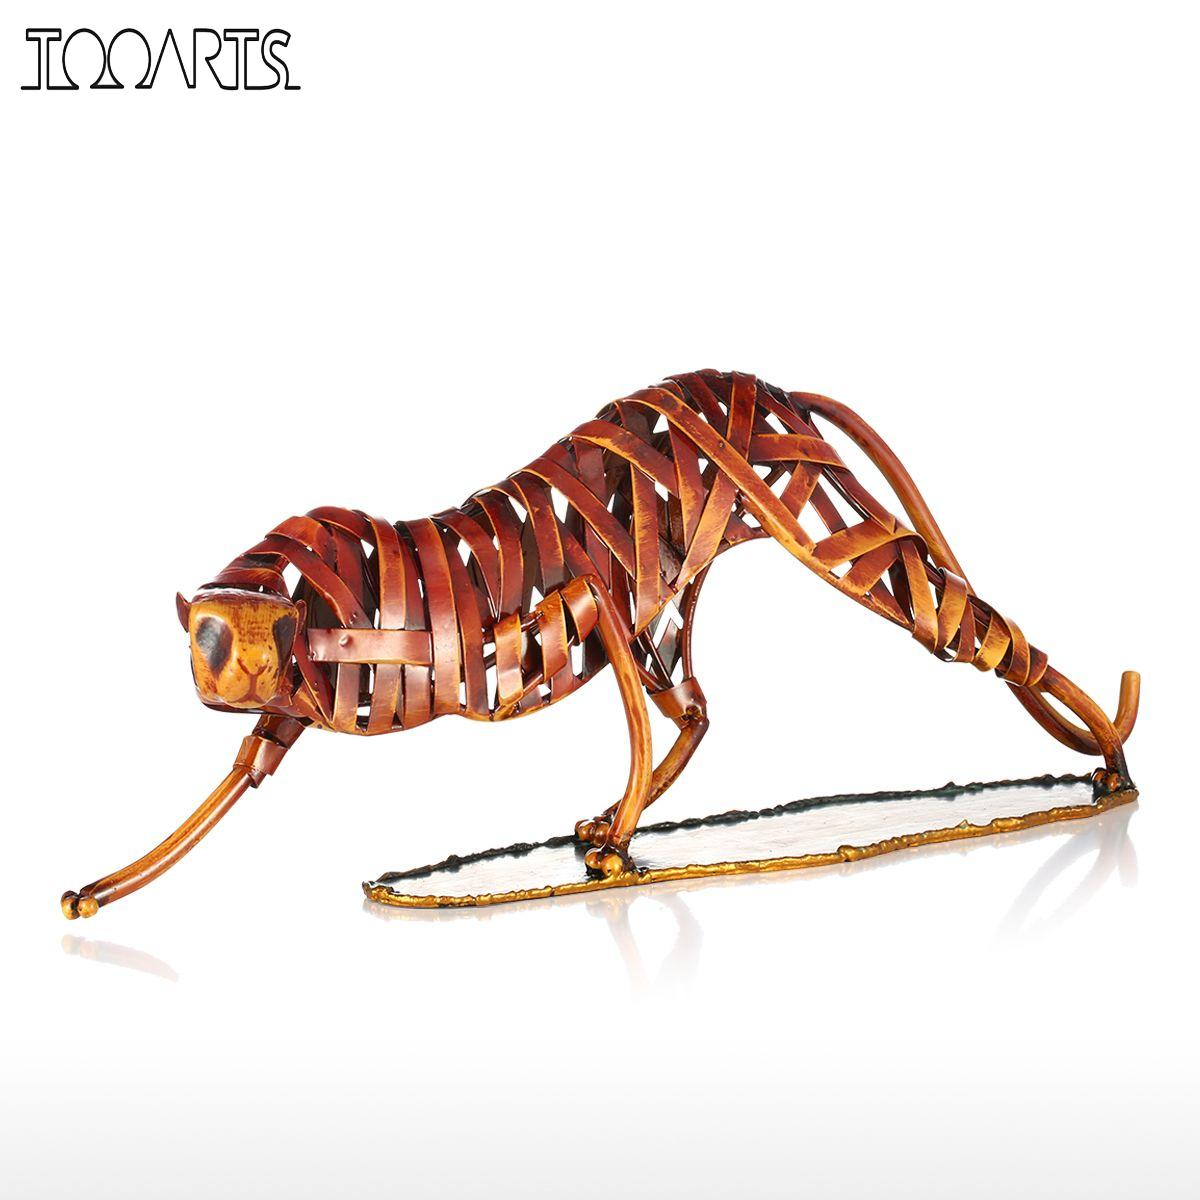 Tooarts Metal Weaving Leopard Figurine Iron Figurine Home Decoration Animal Craft Gift For Home Office